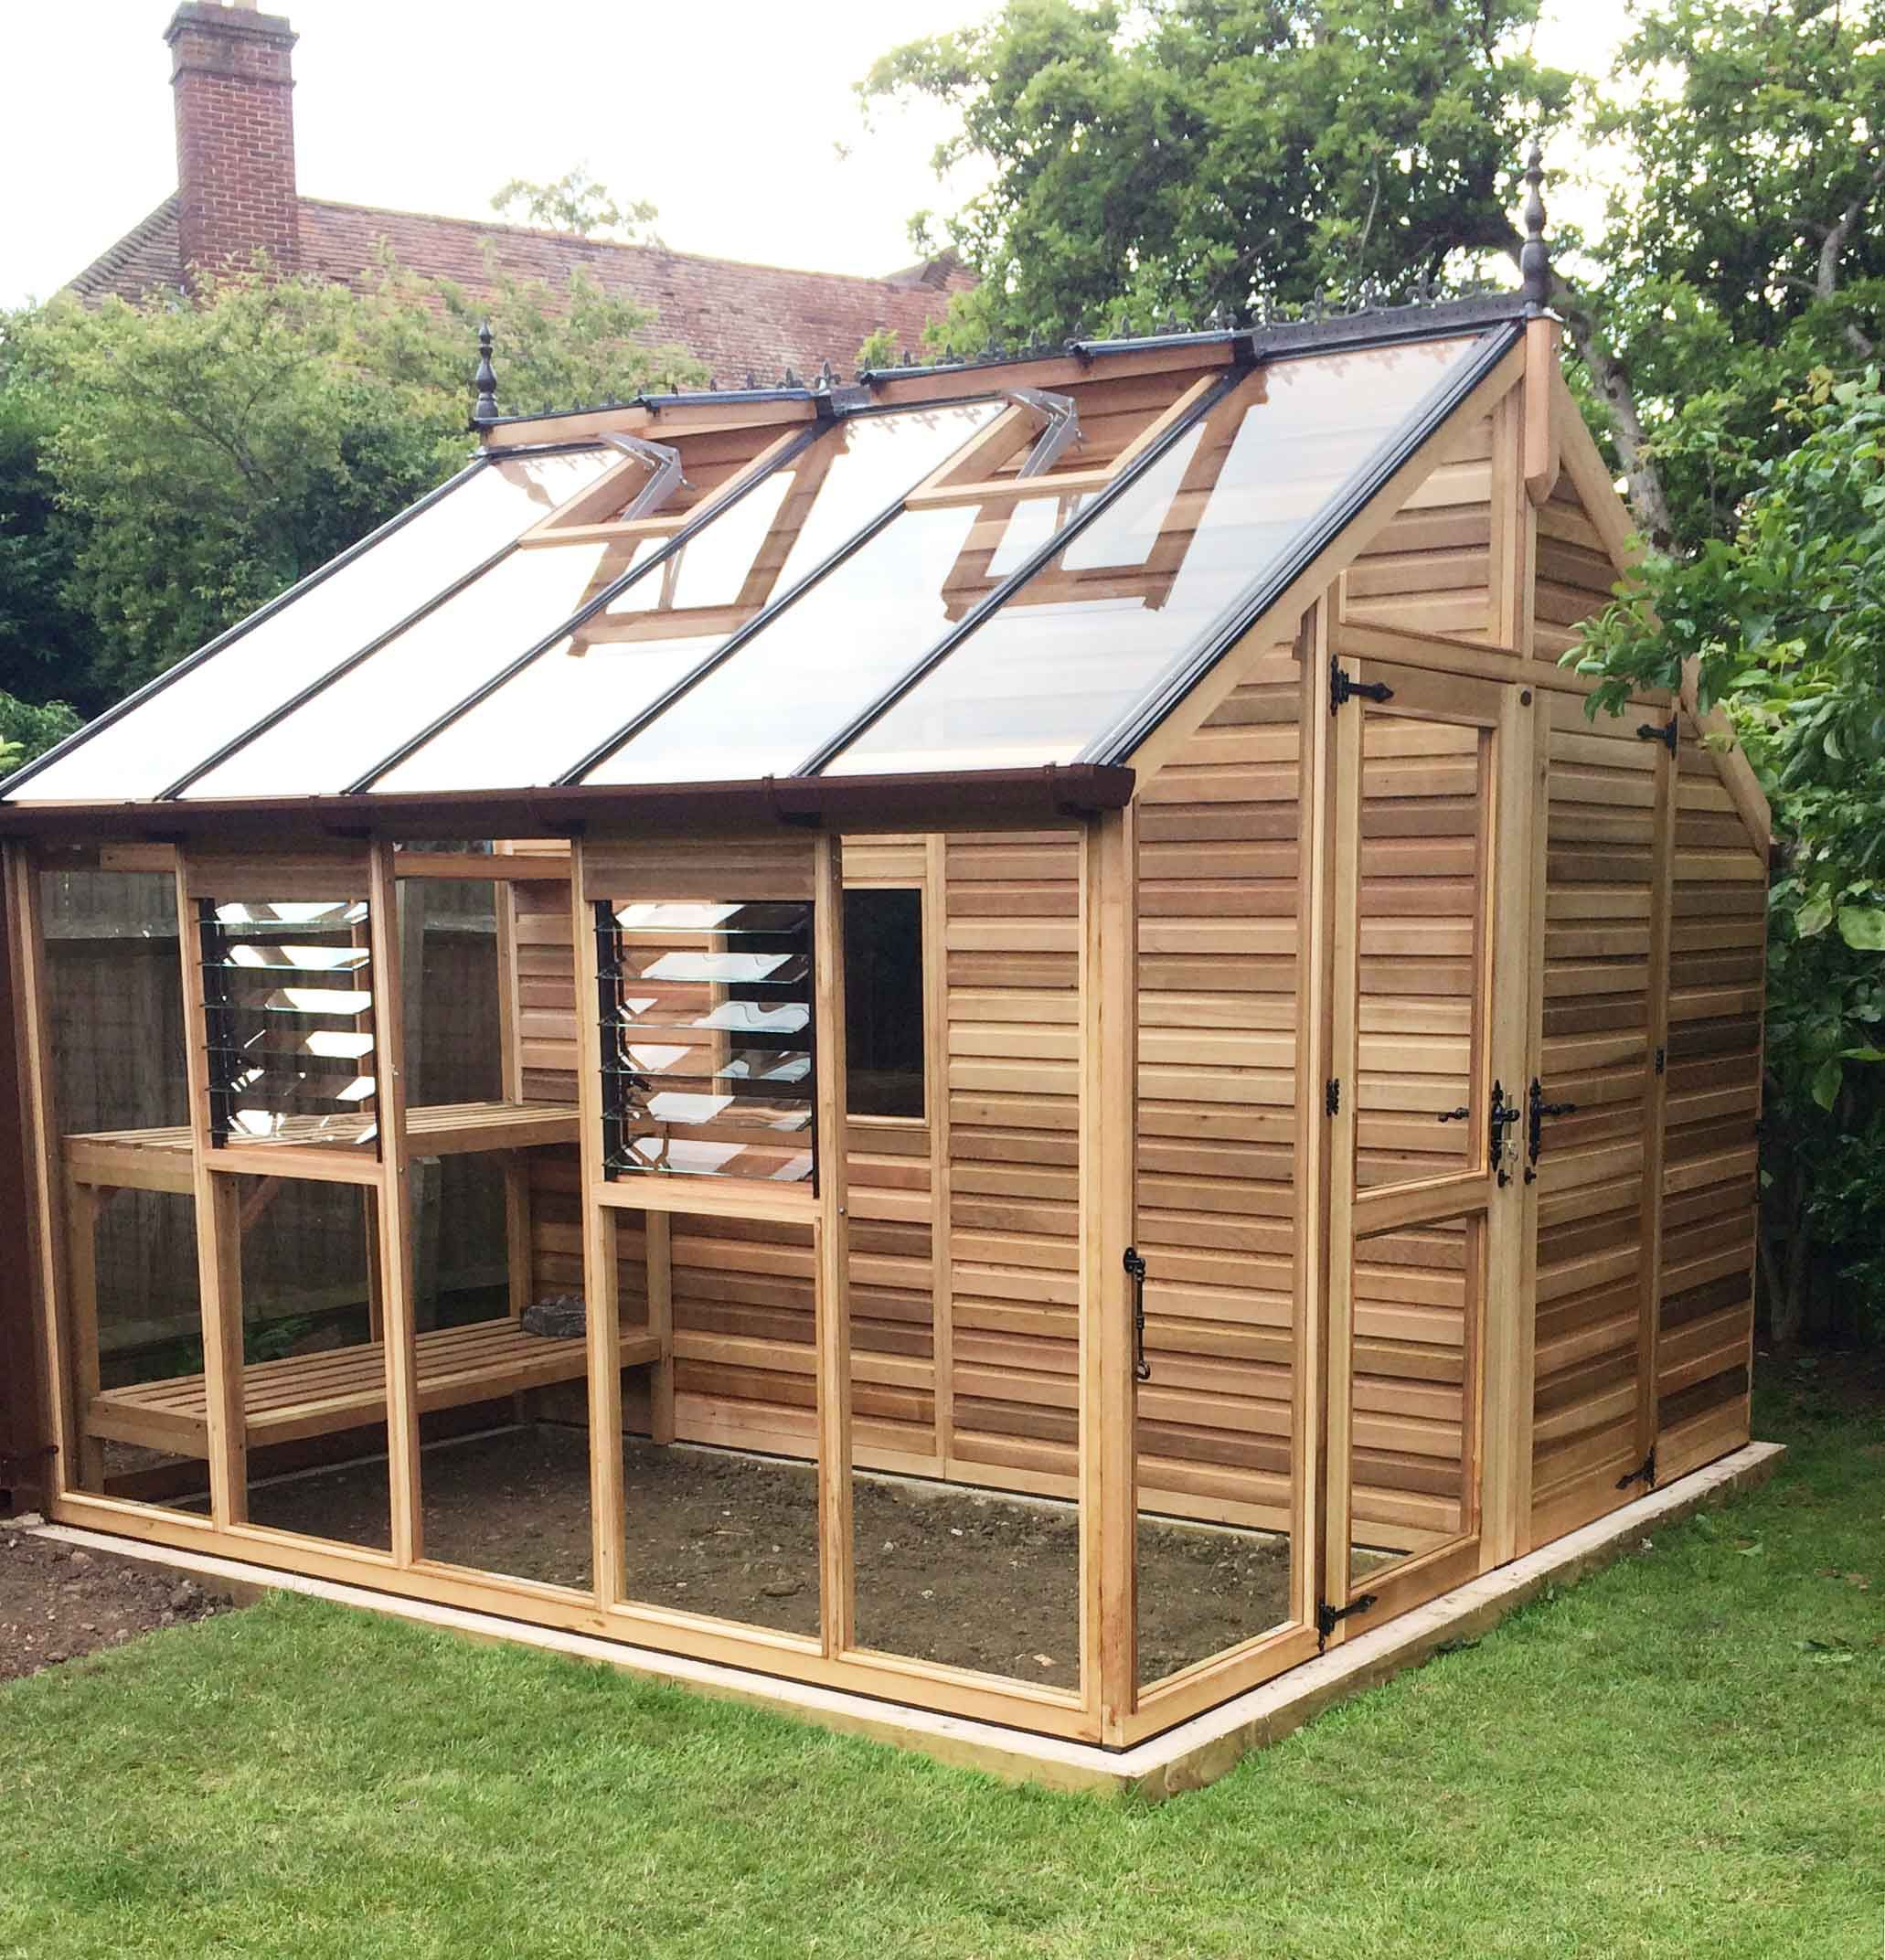 centaur greenhouse combo pinterest shed less sheds pin for cedar